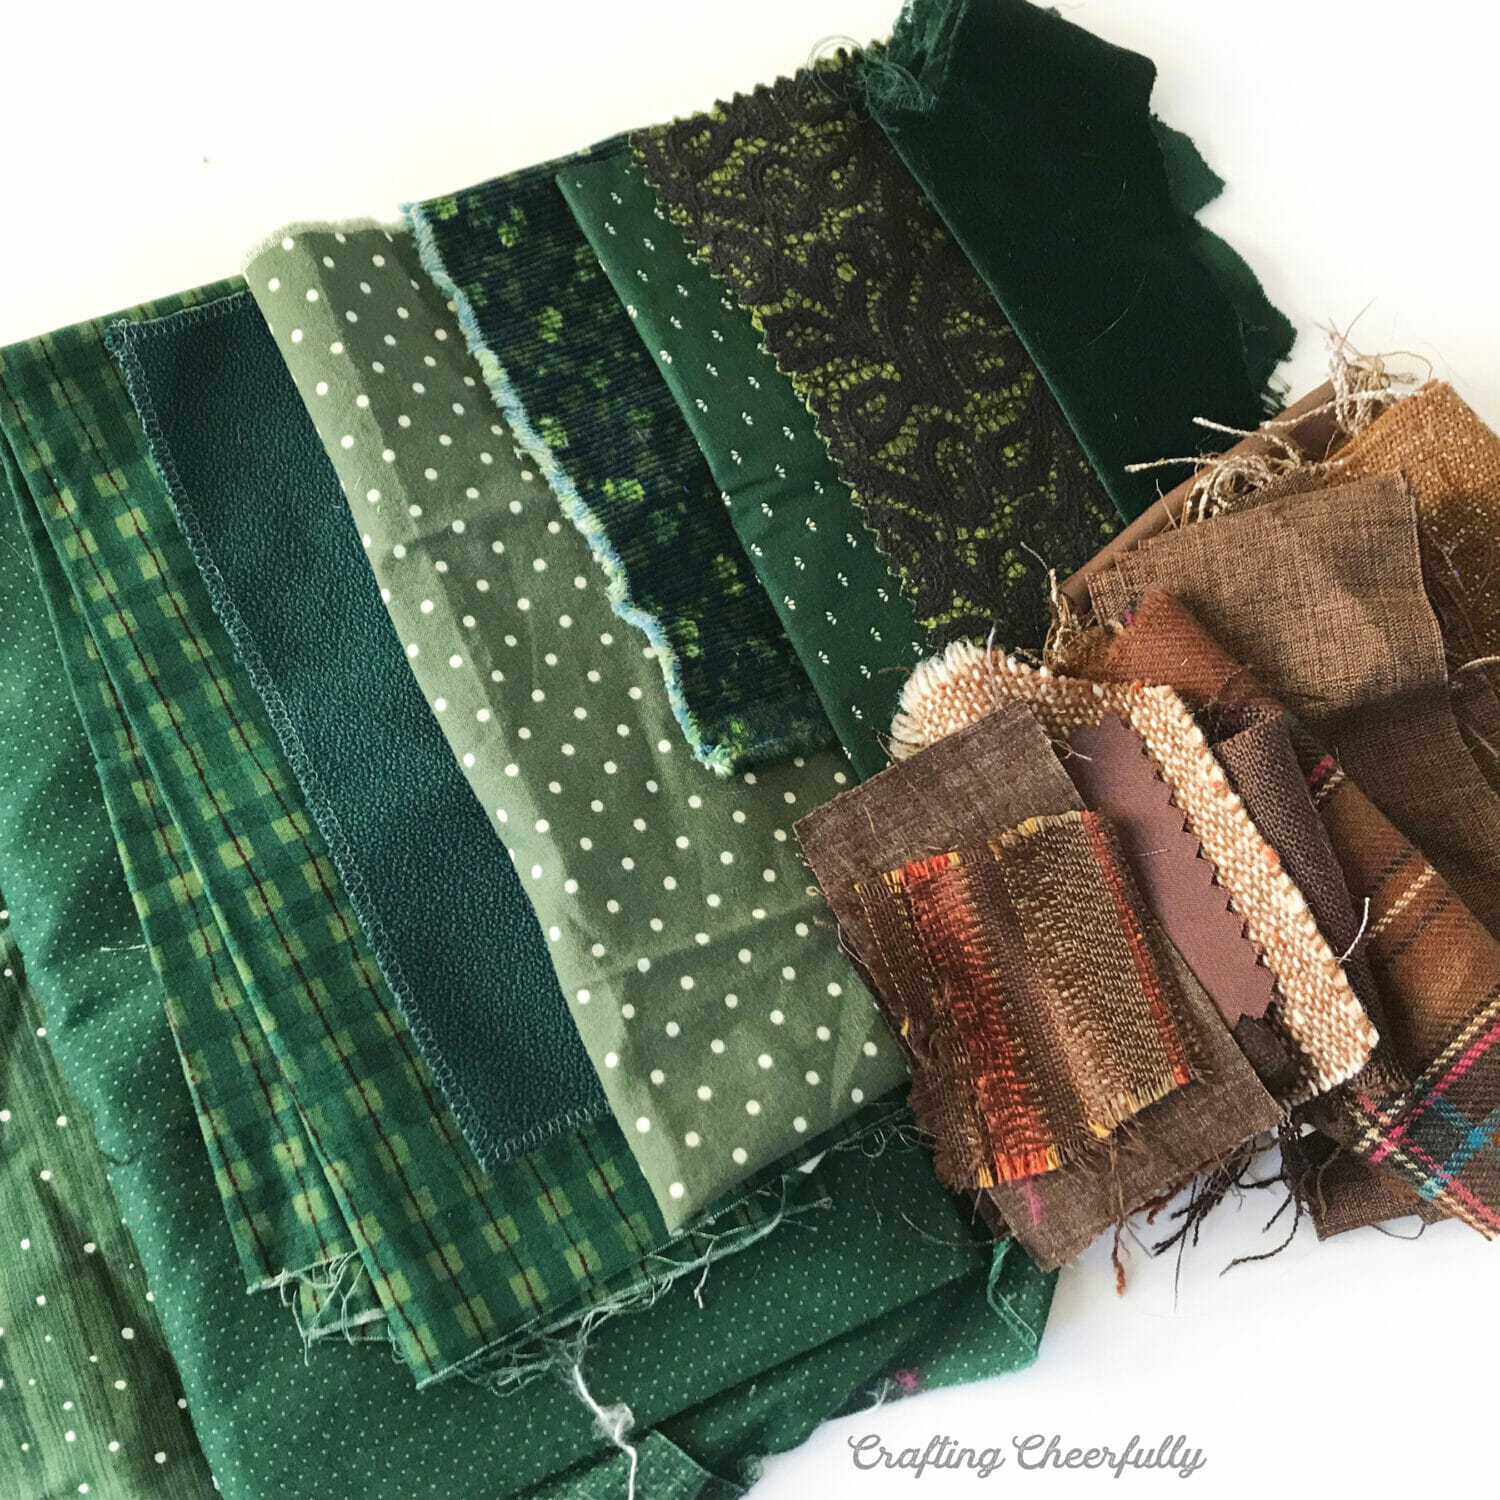 Scraps of green and brown wool used to make the tree banner are arranged on a white table.